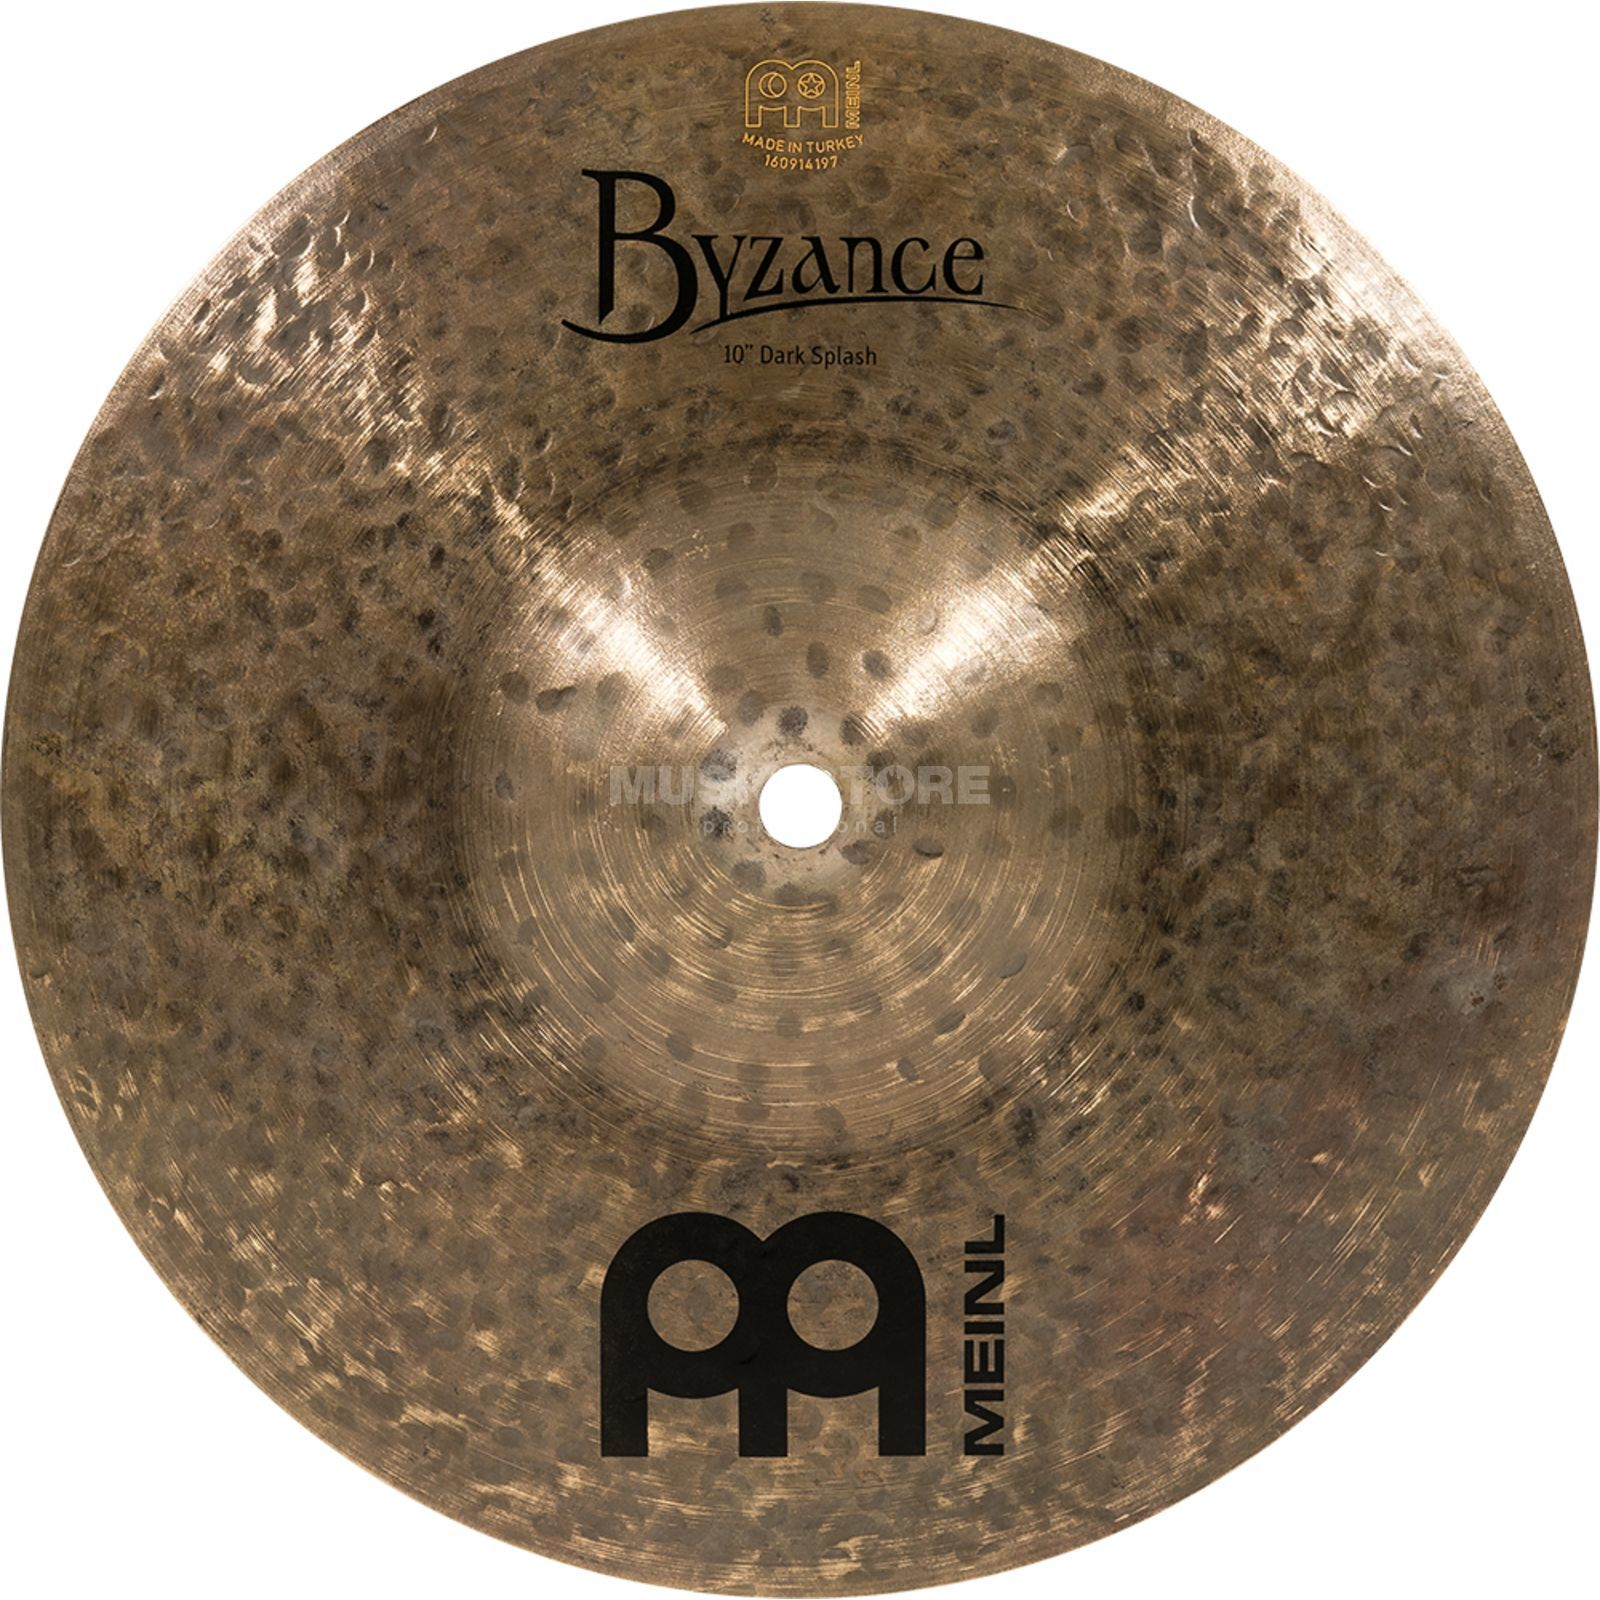 "Meinl Byzance Dark Splash 10"" B10DAS, Dark Finish Produktbild"